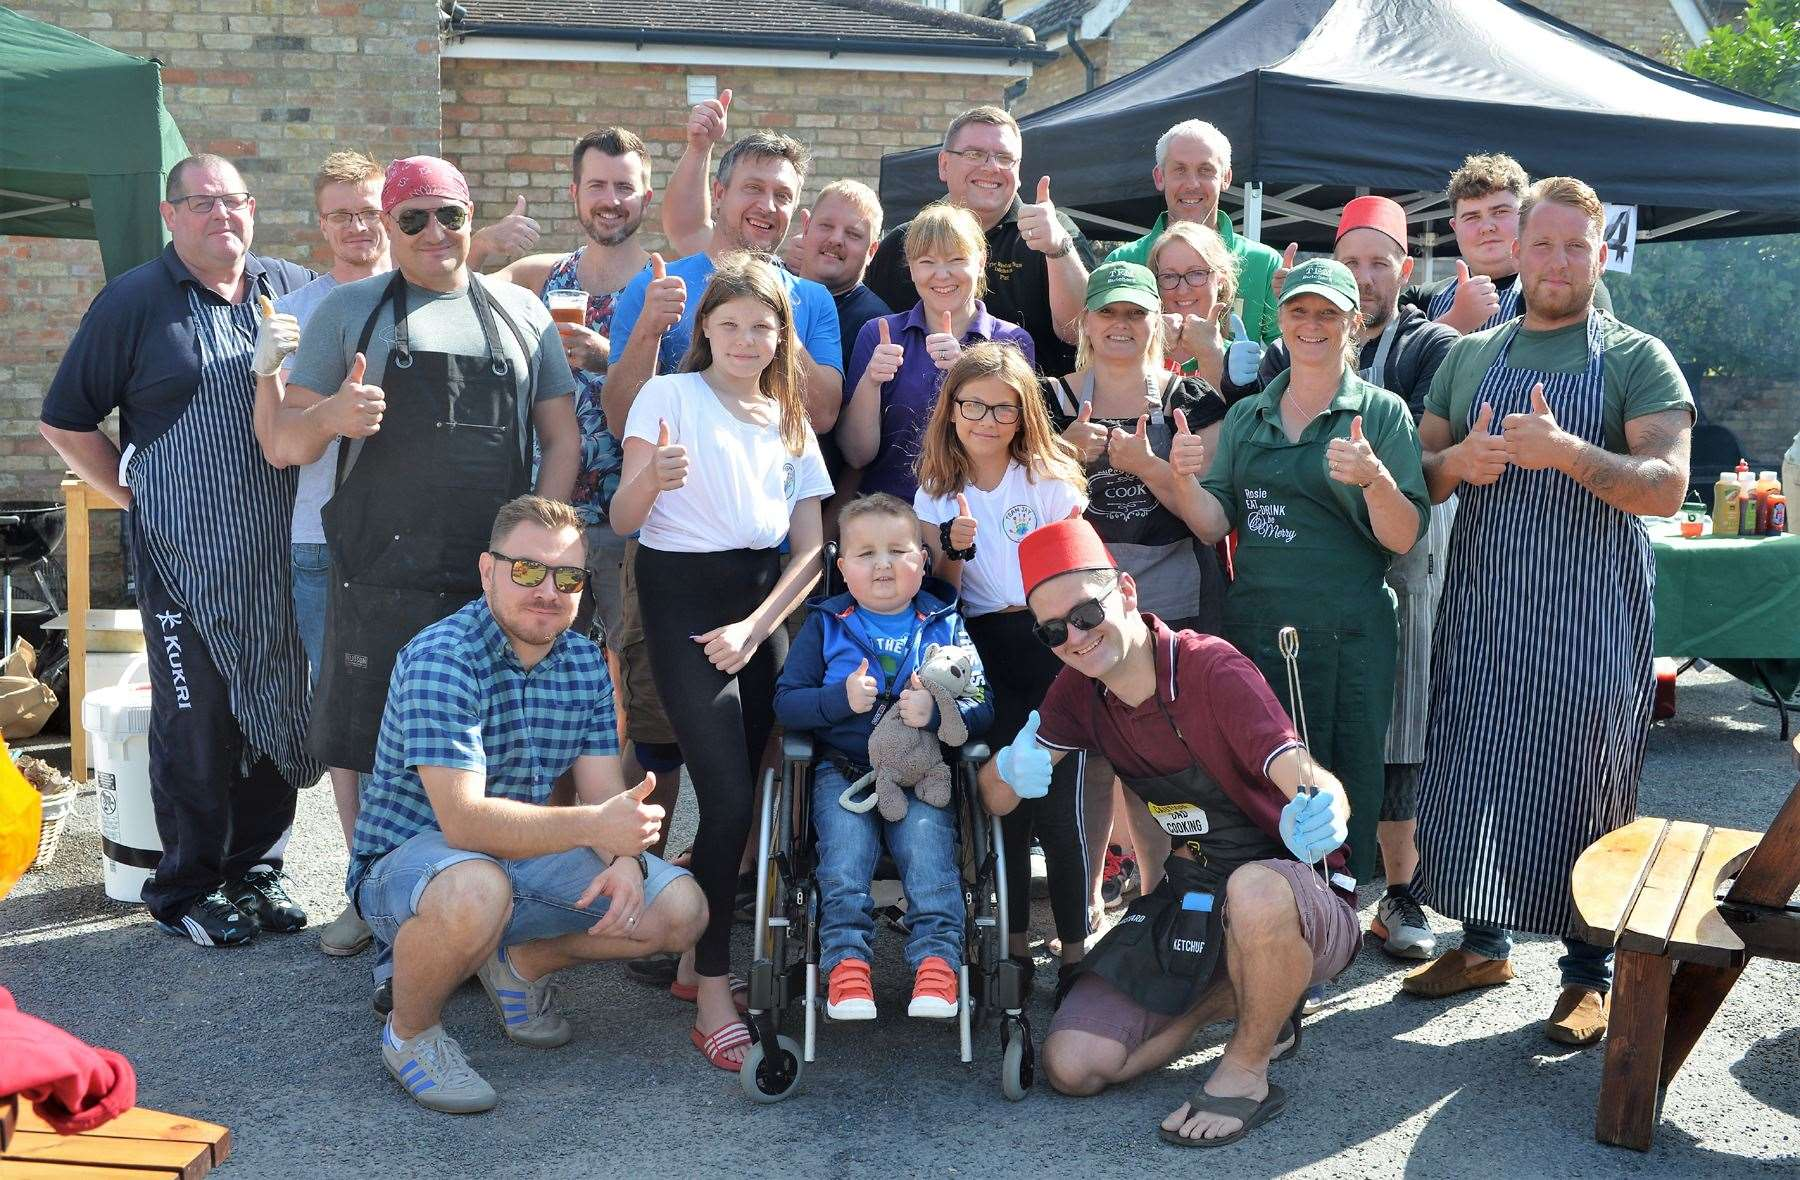 Jay Davison pictured in August last year with his family, supporters and wellwishers at Isleham's Rising Sun pub